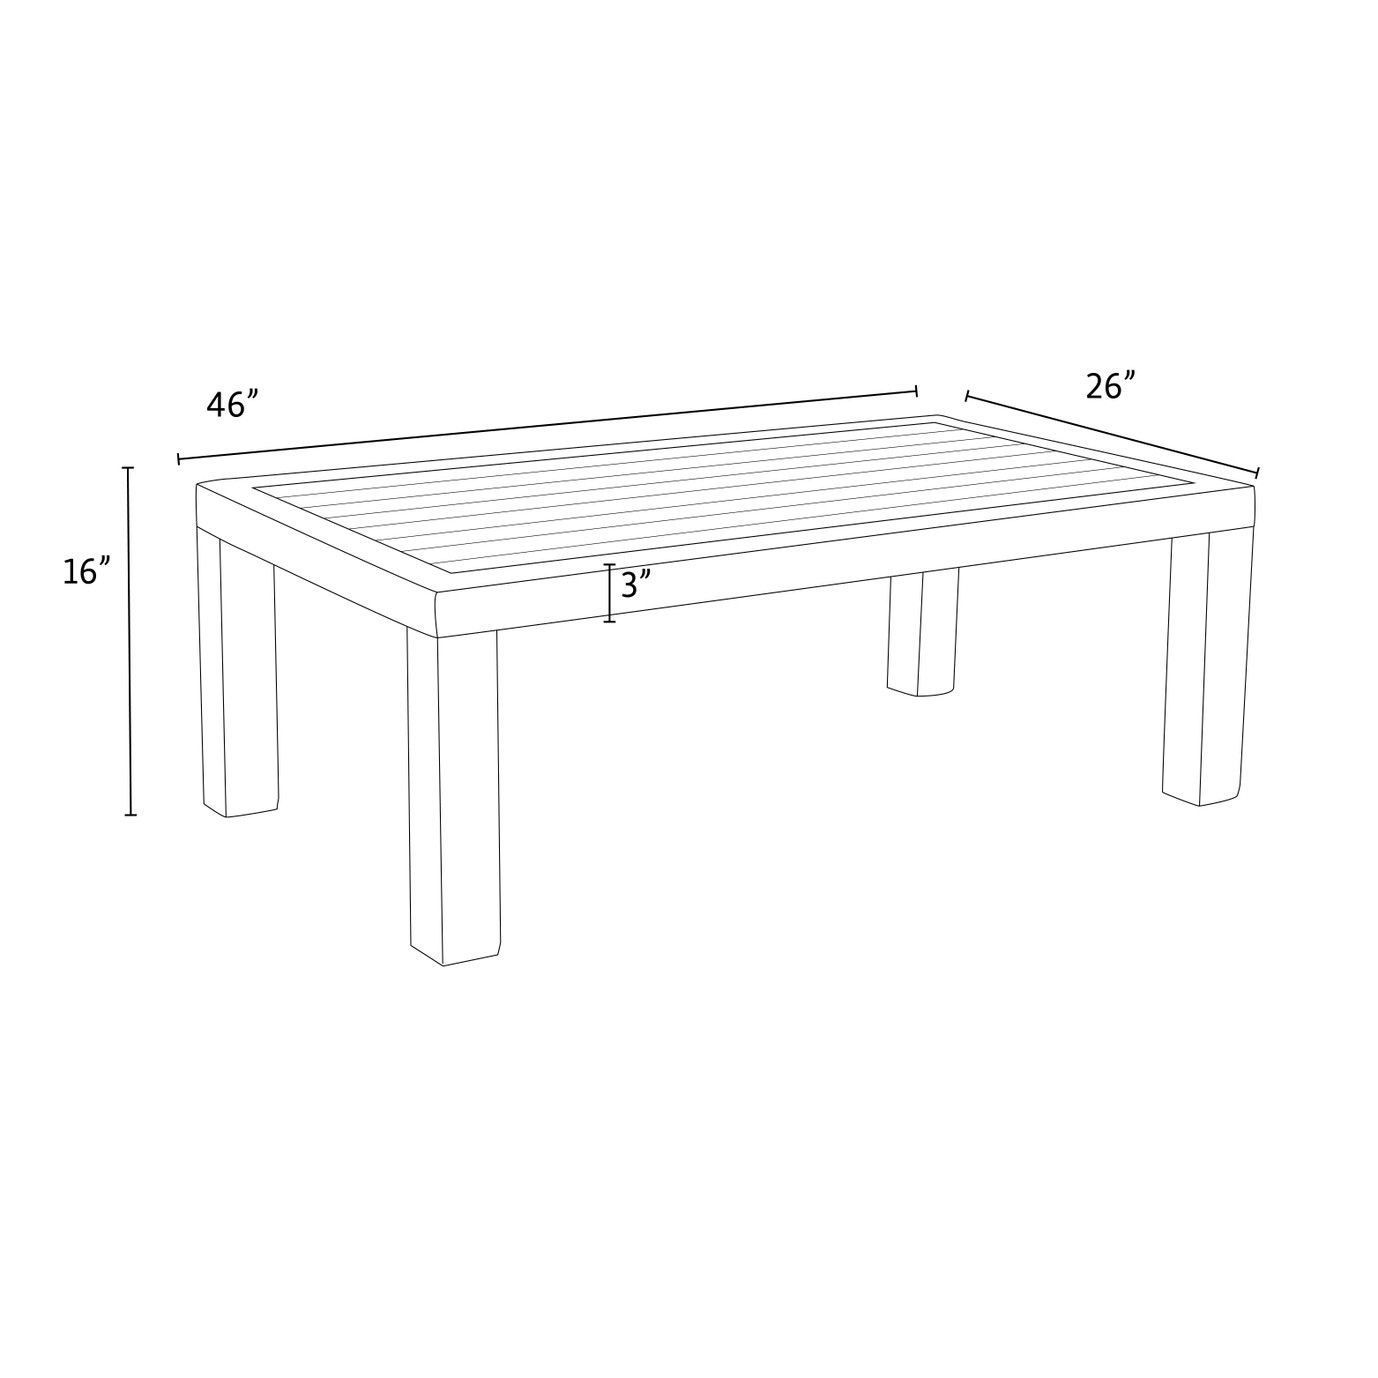 Deco™ Deluxe Wood Top Coffee Table